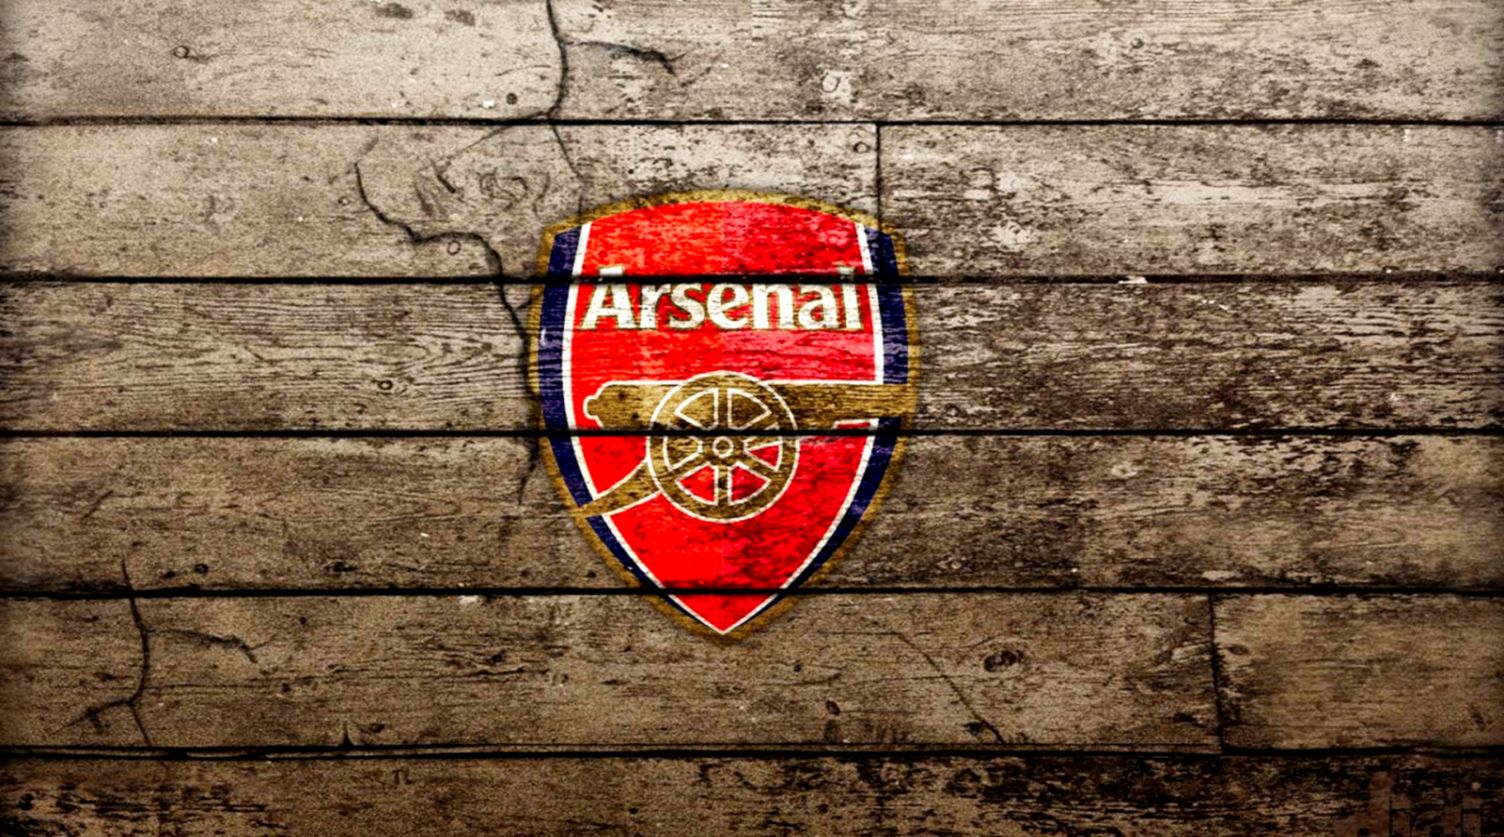 Arsenal Wallpaper Hd Elegant Wallpapers